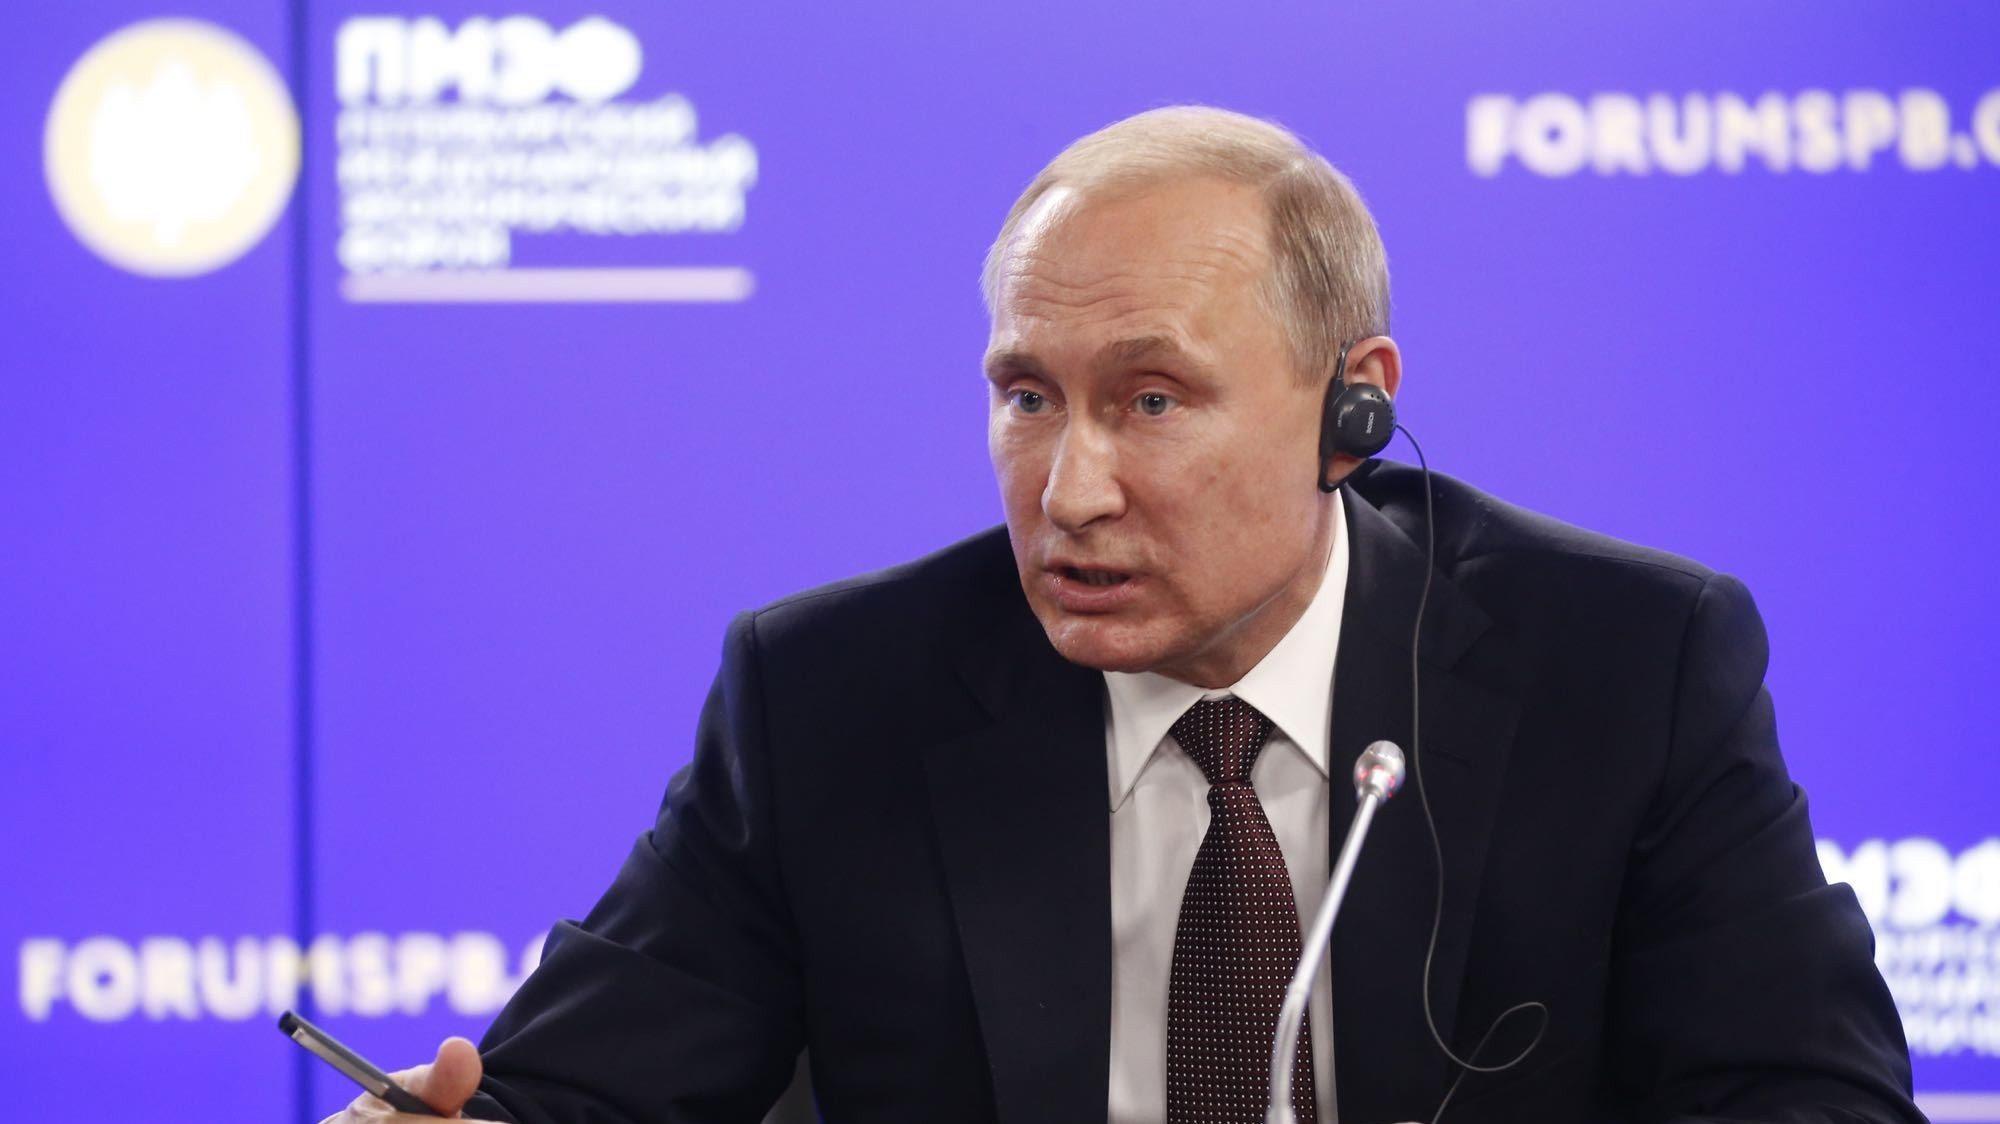 Putin says US is 'probably world's only superpower,' walks back Trump compliments